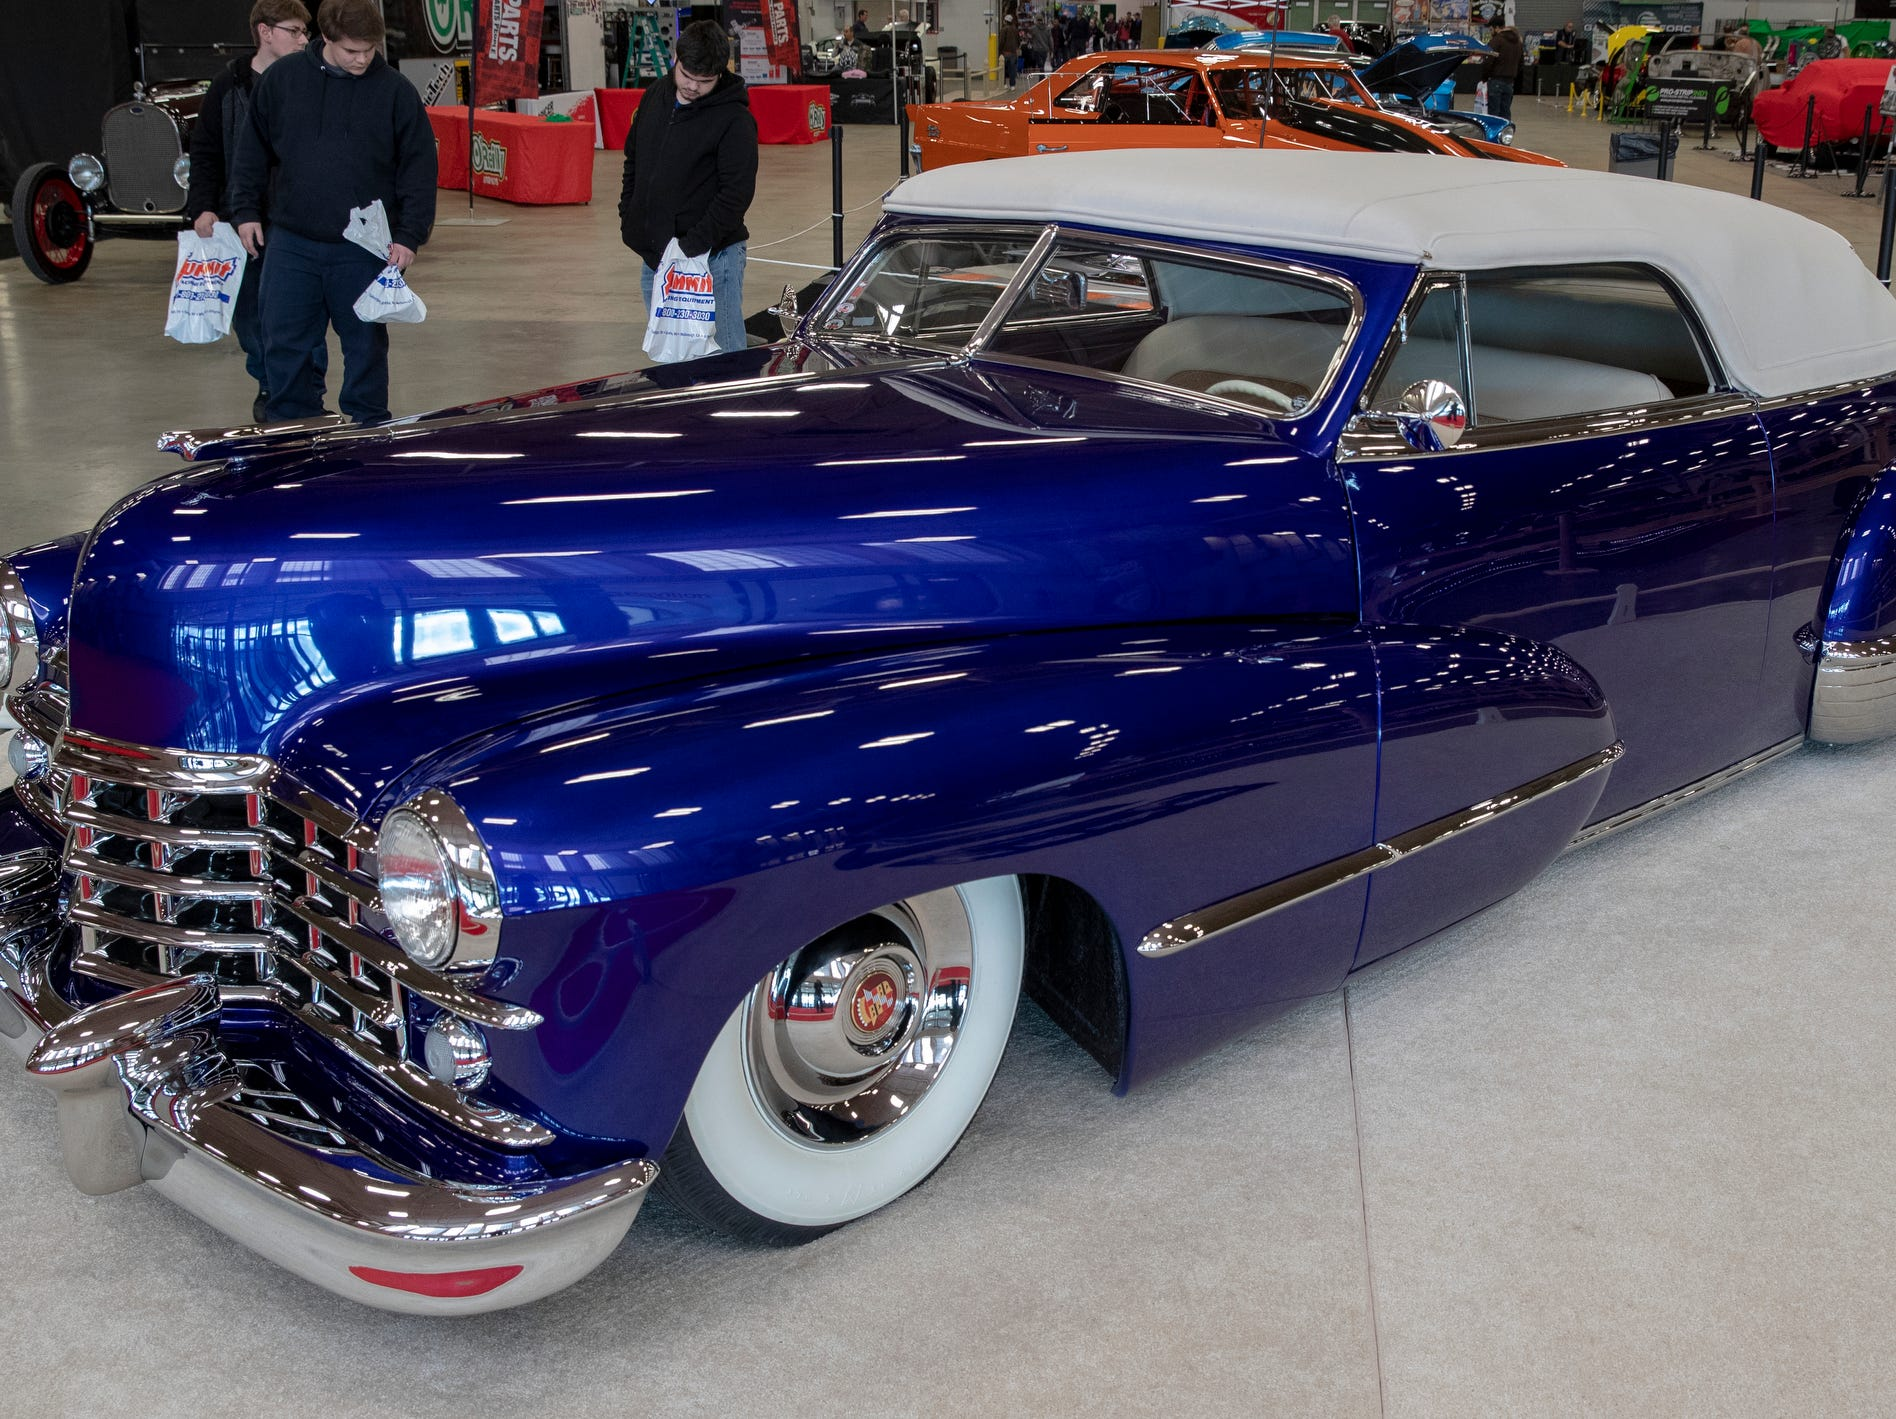 A custom 1947 Cadillac, at World of Wheels at the Indiana State Fairgrounds, Indianapolis, Friday, Feb. 8, 2019. The event runs through the weekend and features four big rooms of stock and heavily customized cars.